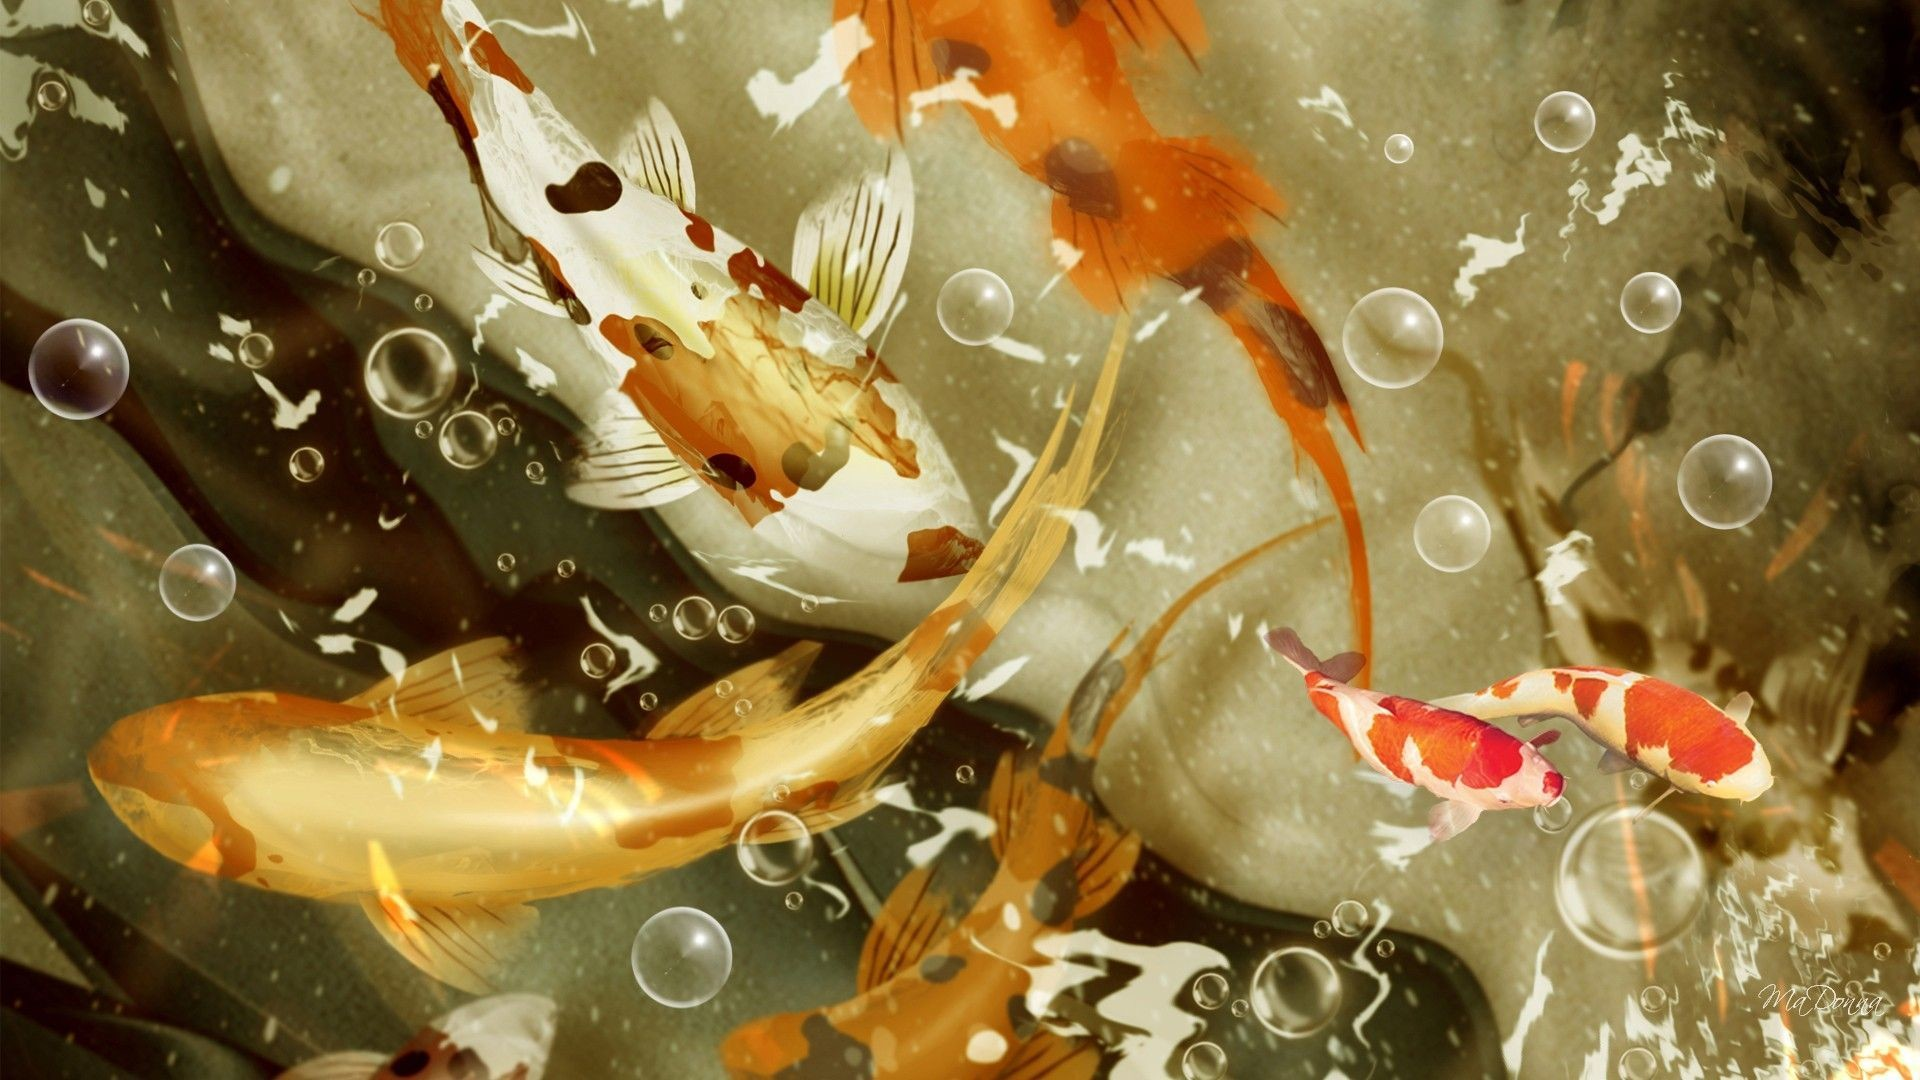 1920x1080 HD Koi Fish Wallpaper